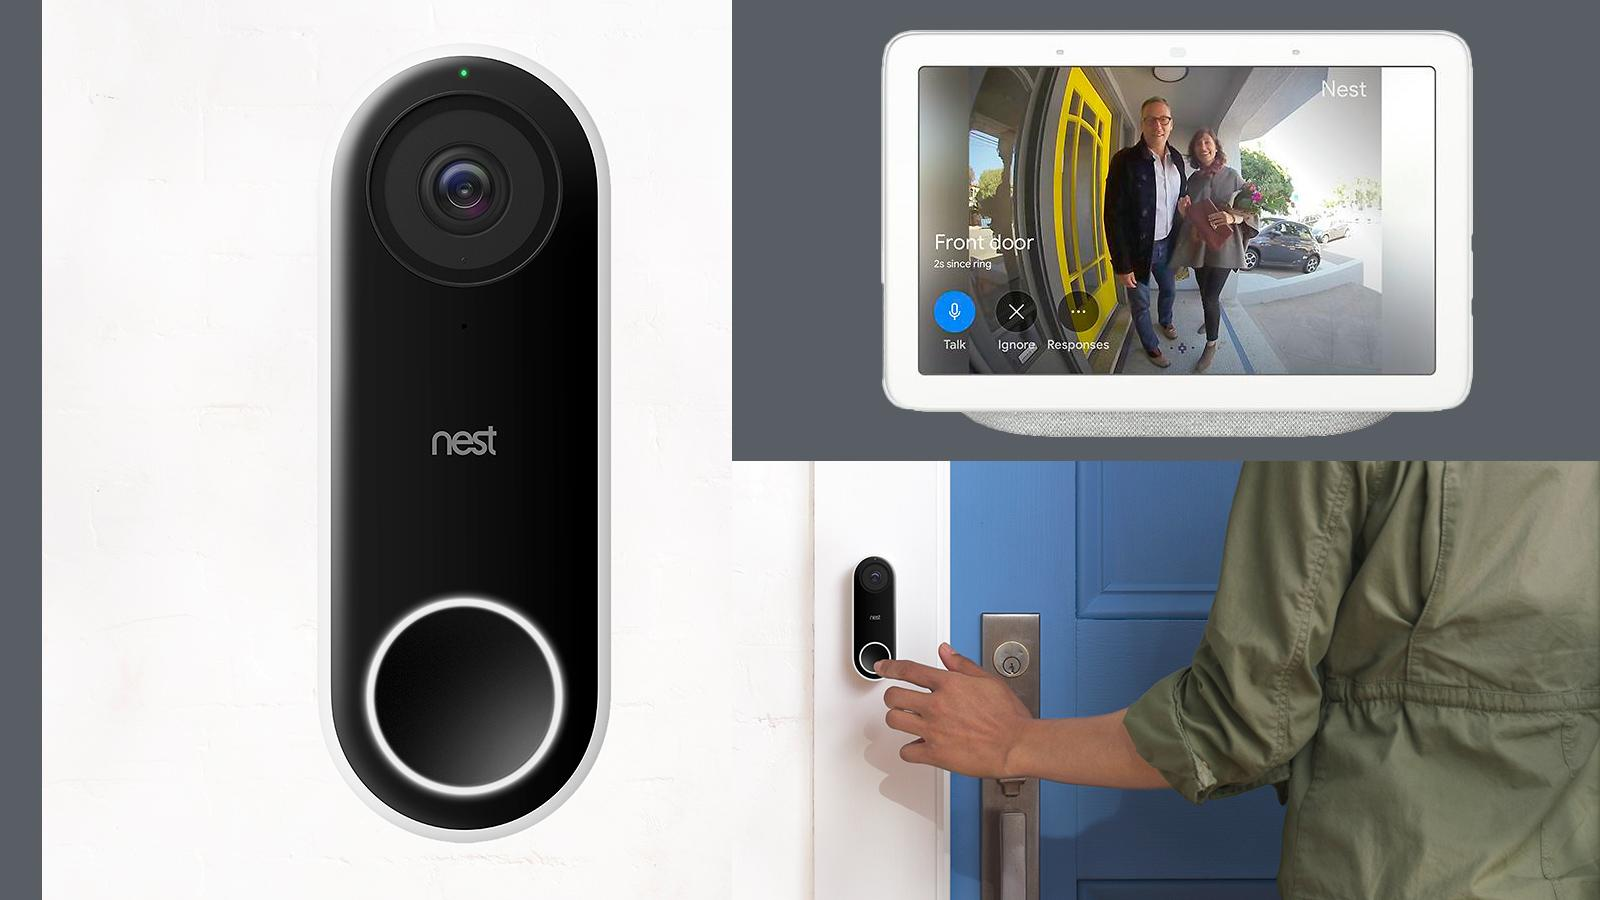 Nest doorbell, an example of component-based design